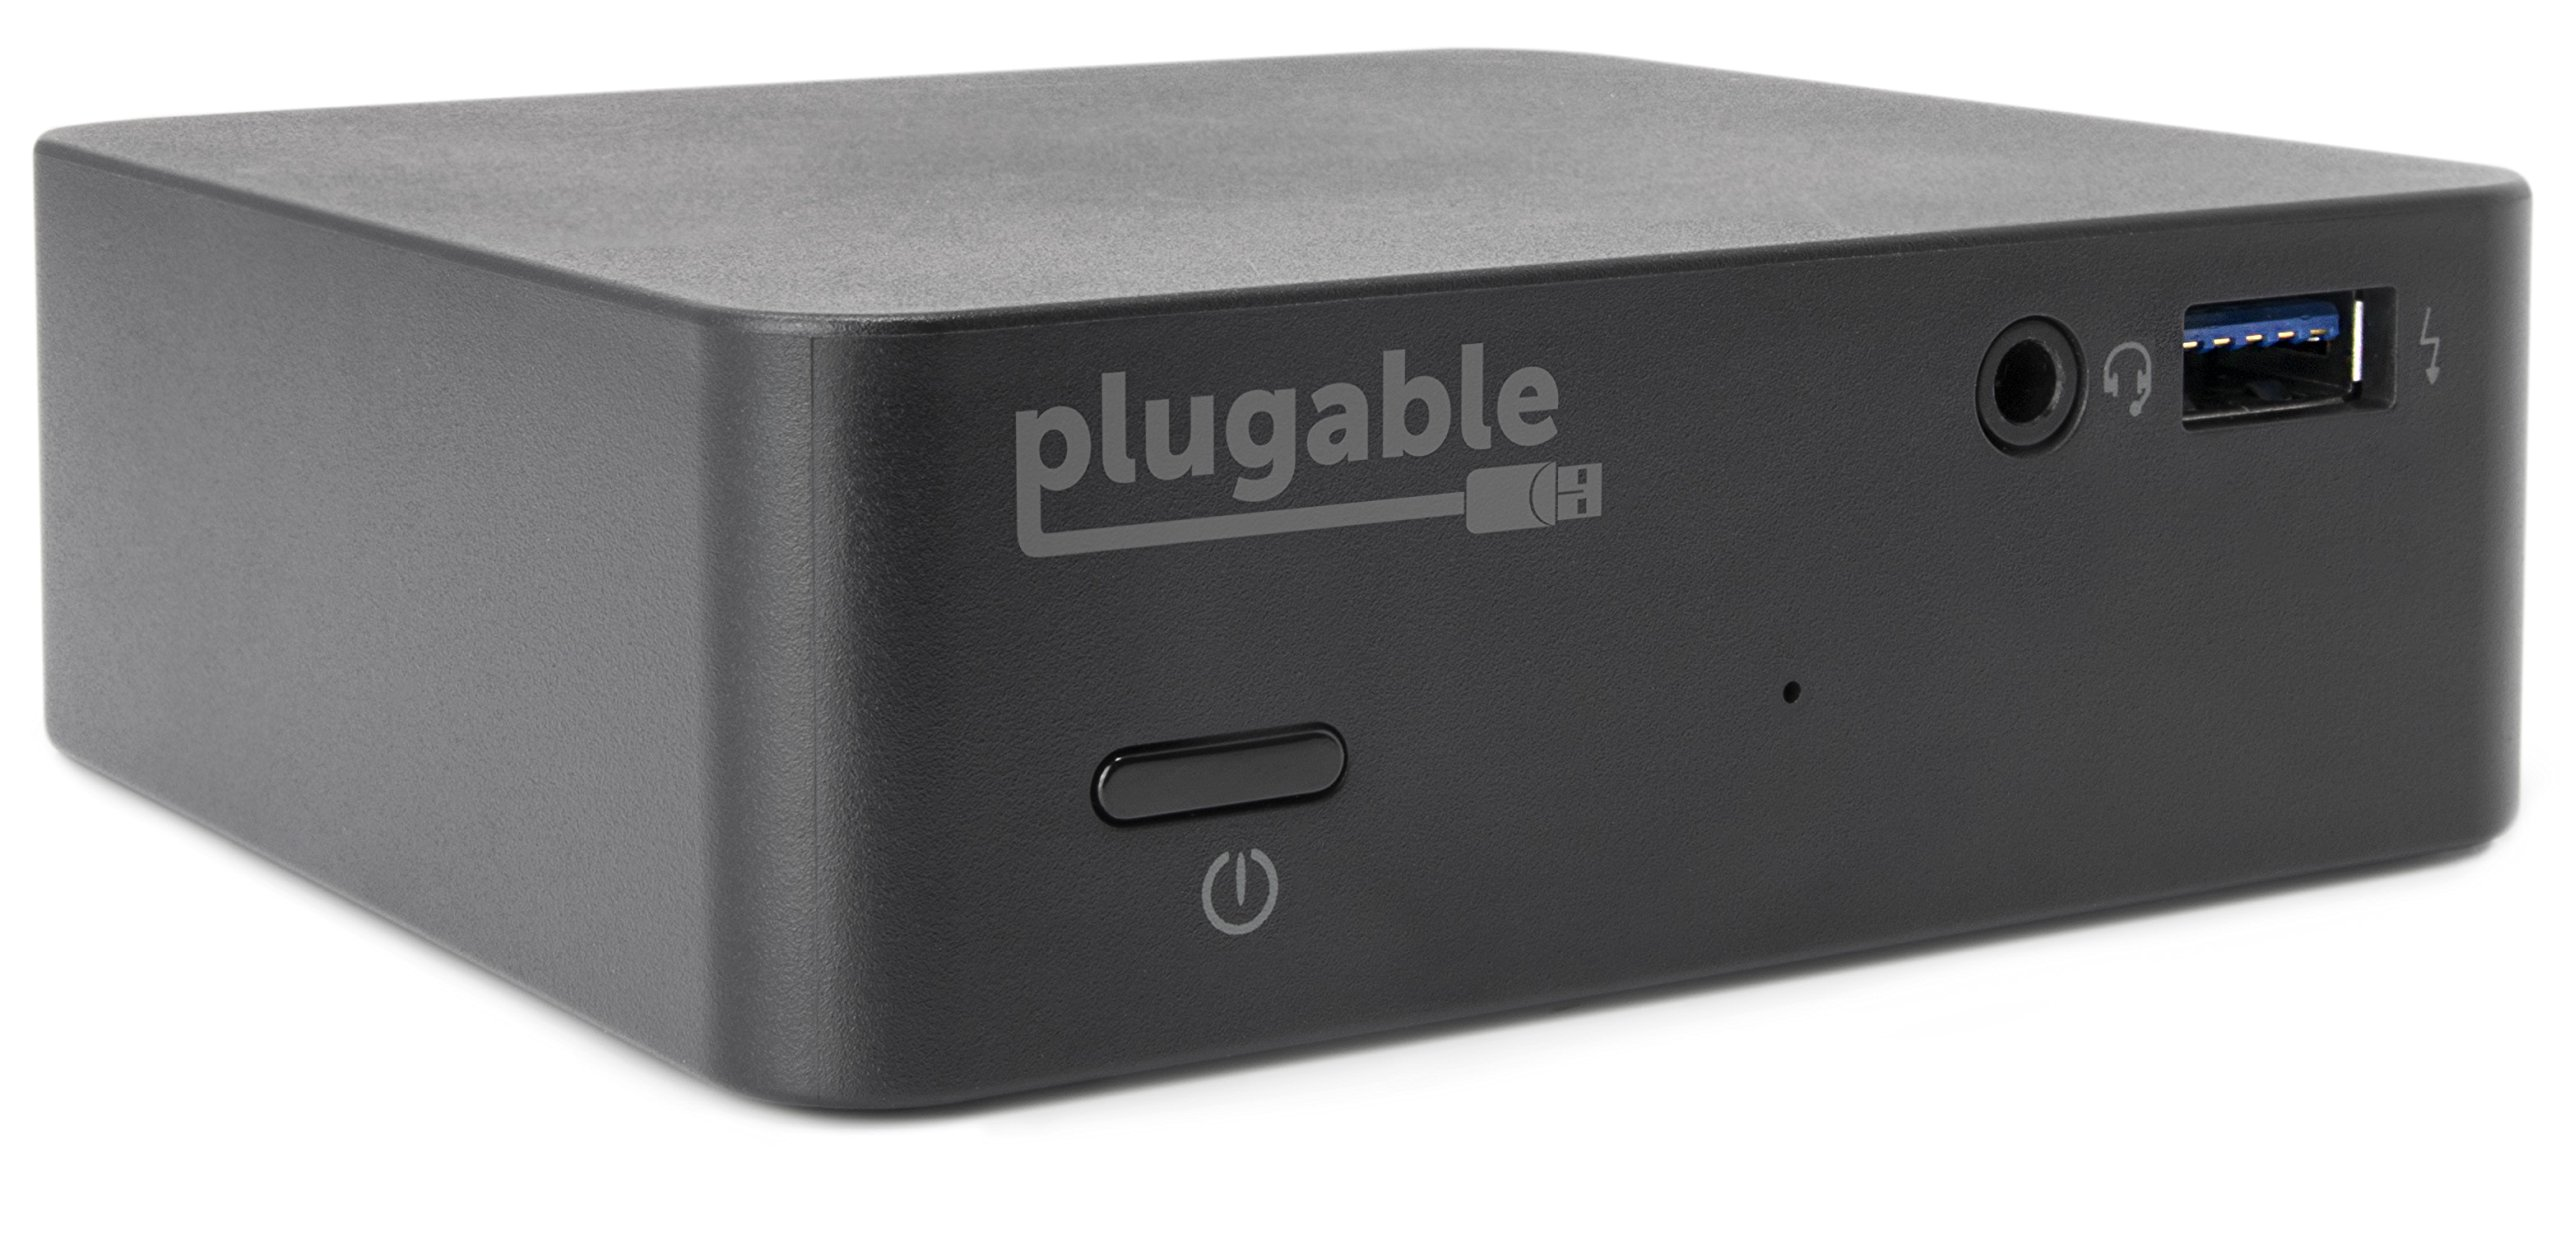 Plugable USB-C Mini Docking Station with 85W Charging for Thunderbolt 3 and USB-C MacBooks and Select Windows Systems (HDMI up to 4K@30Hz, Gigabit Ethernet, 4x USB 3.0 Ports, USB Power Delivery)